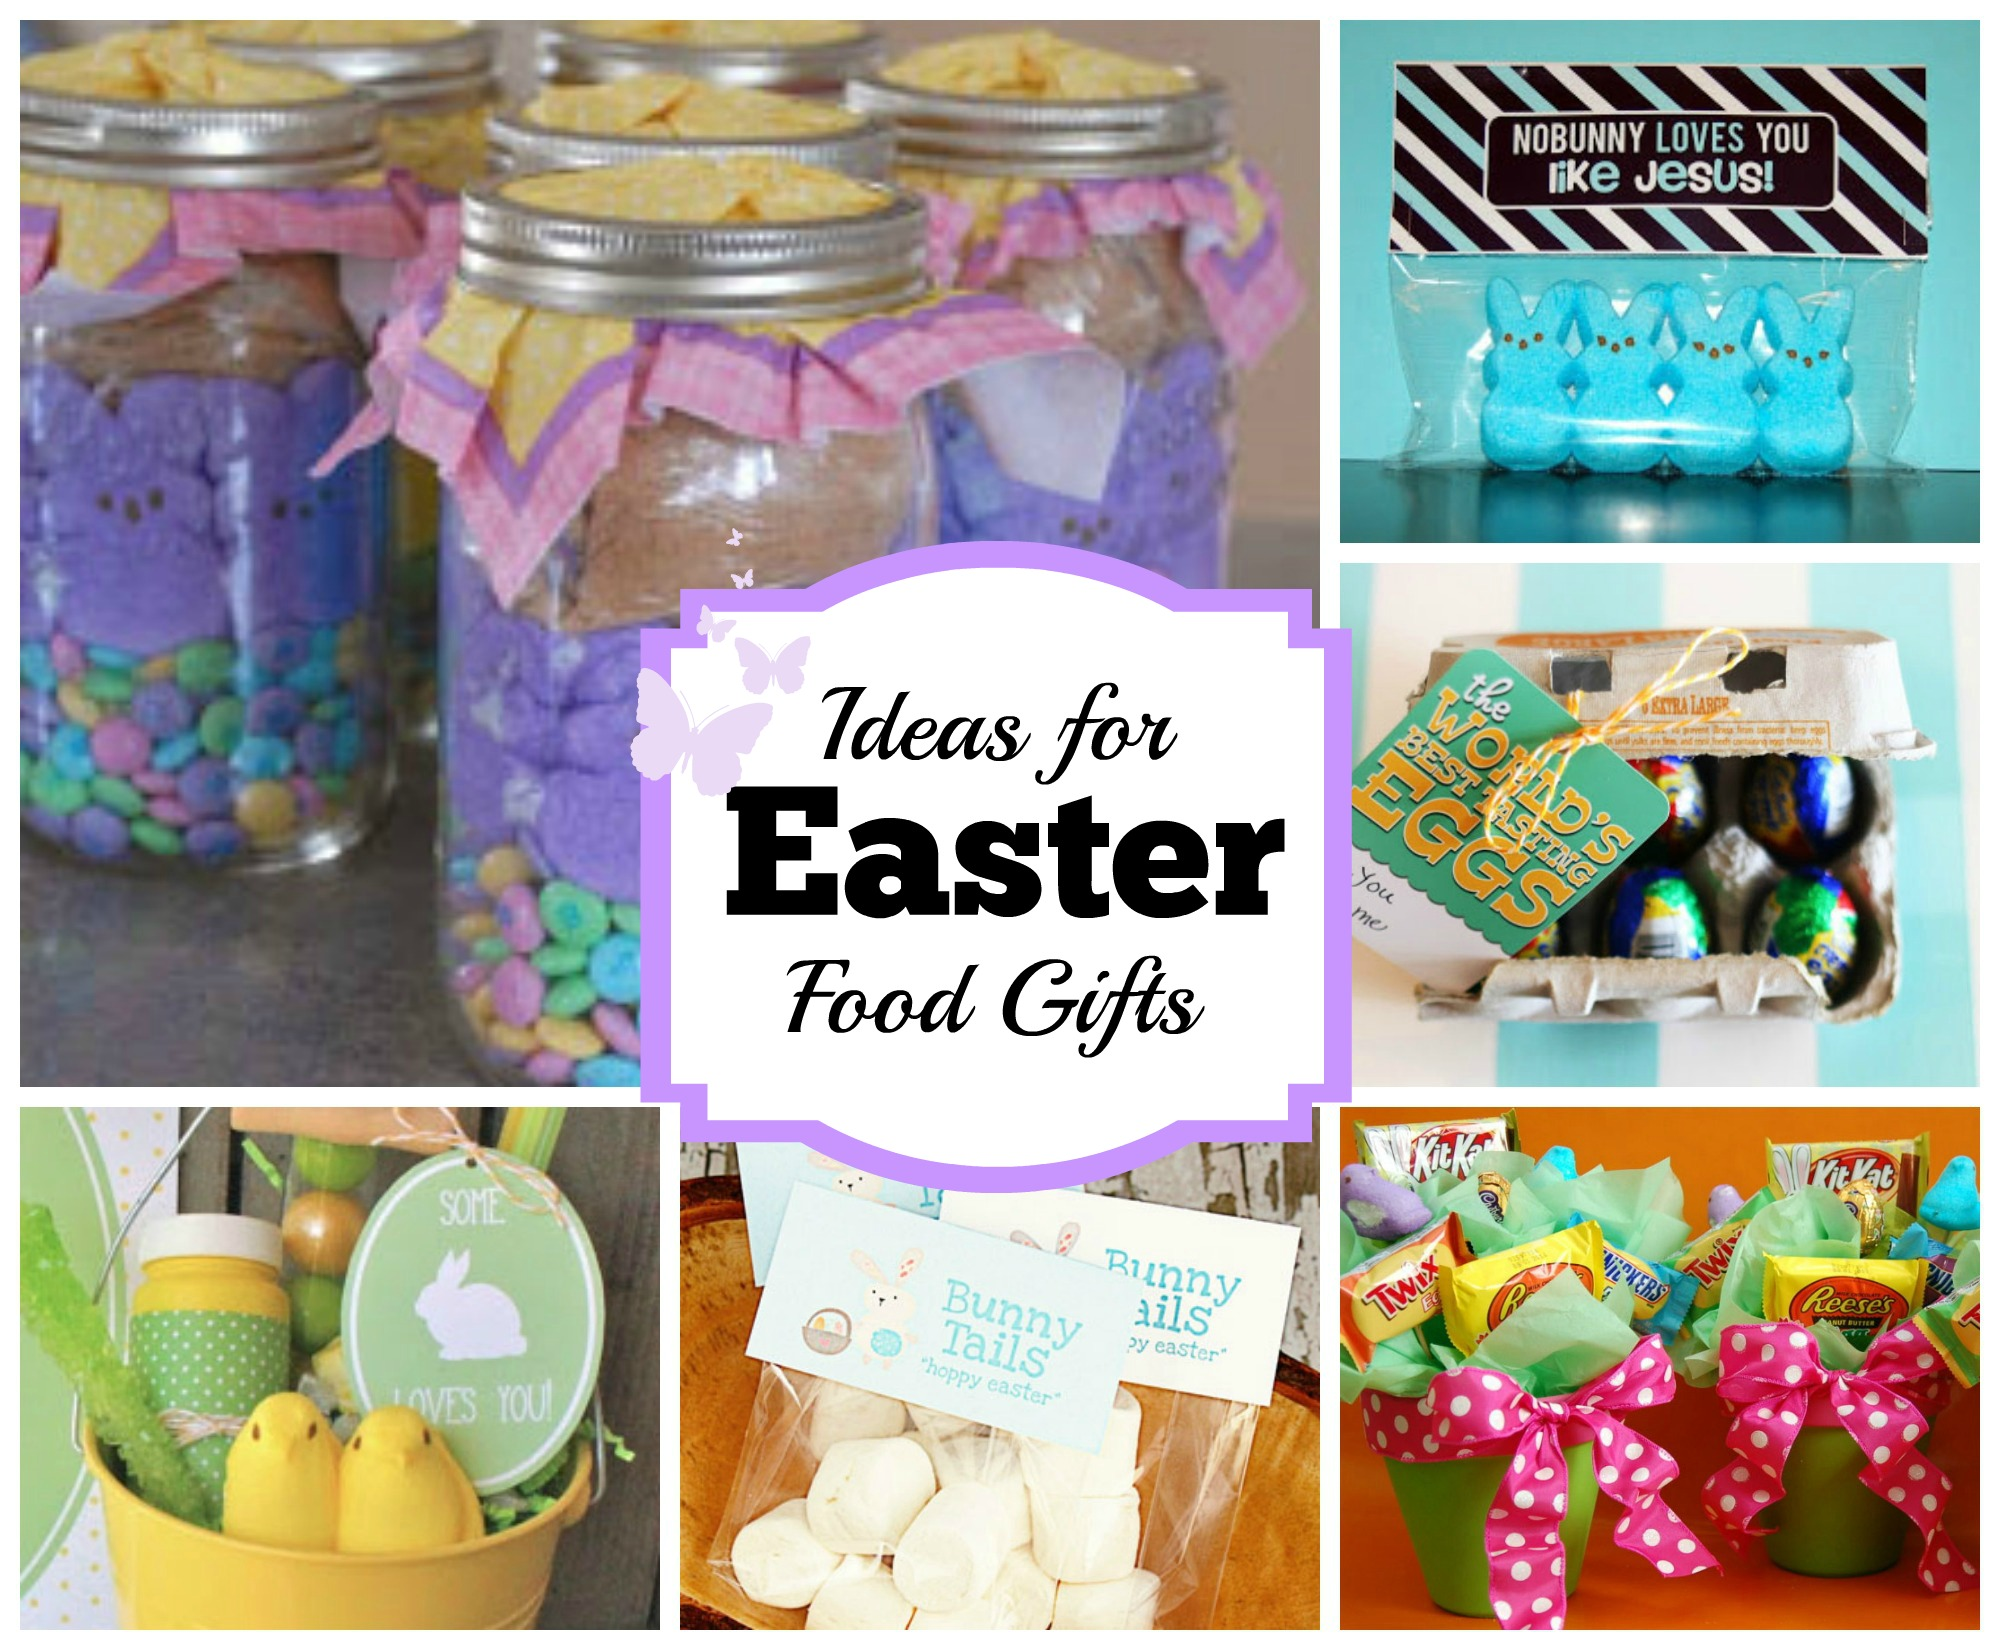 Diy easter food gift ideas celebrating holidays easter diy food gift ideas negle Gallery